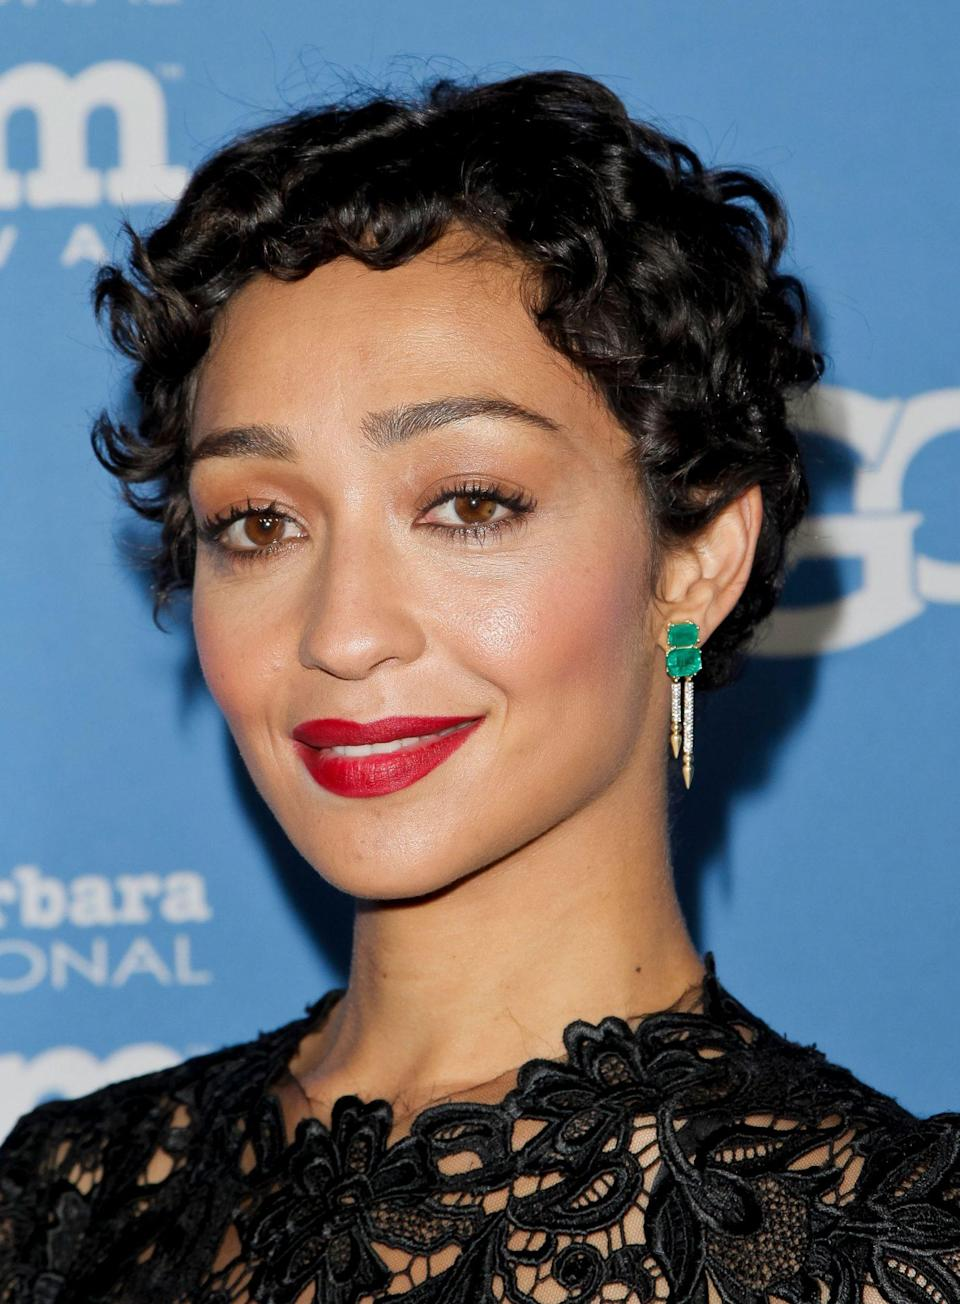 """<p>Bergamy predicts that a textured pixie cut like actress Ruth Negga's here is going to be the """"it"""" cut of the summer. """"A pixie is a sassy look that is light and gives a youthful look,"""" she tells us. """"Adding texture gives a whole new dimension to this already sexy cut.""""</p>"""